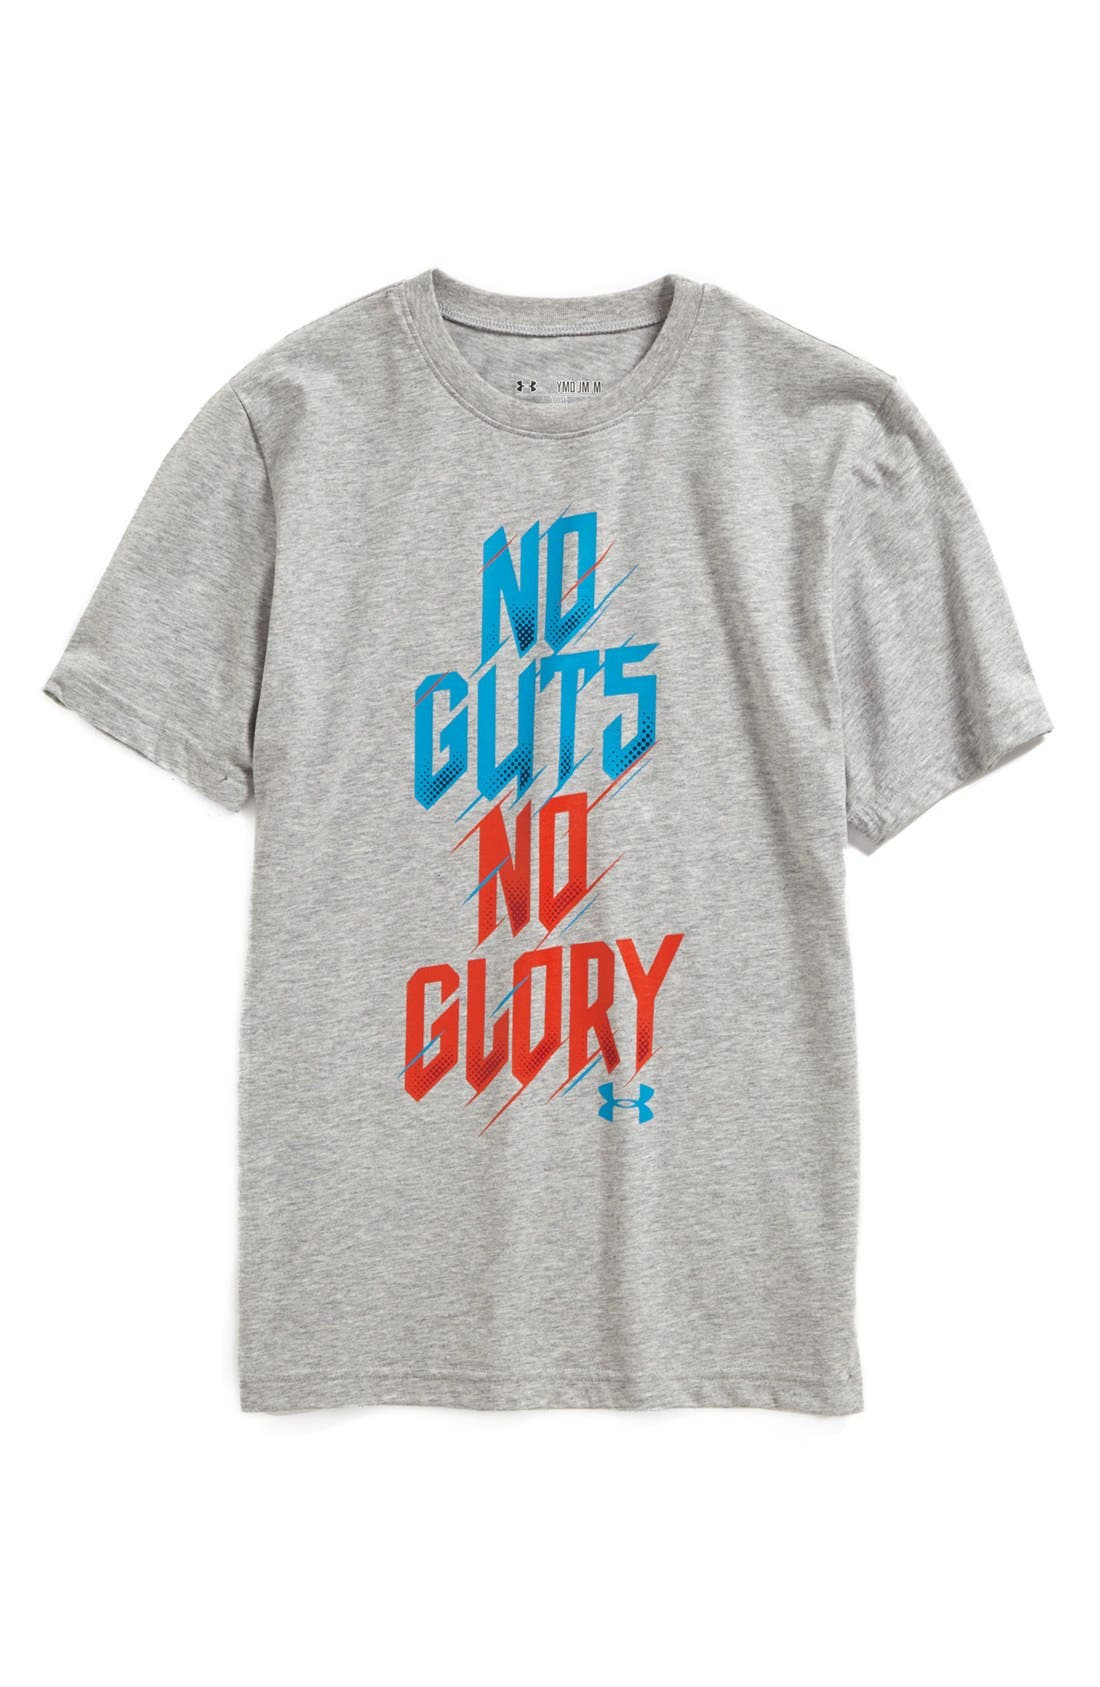 Alternate Image 1 Selected - Under Armour 'No Guts No Glory' T-Shirt (Big Boys)